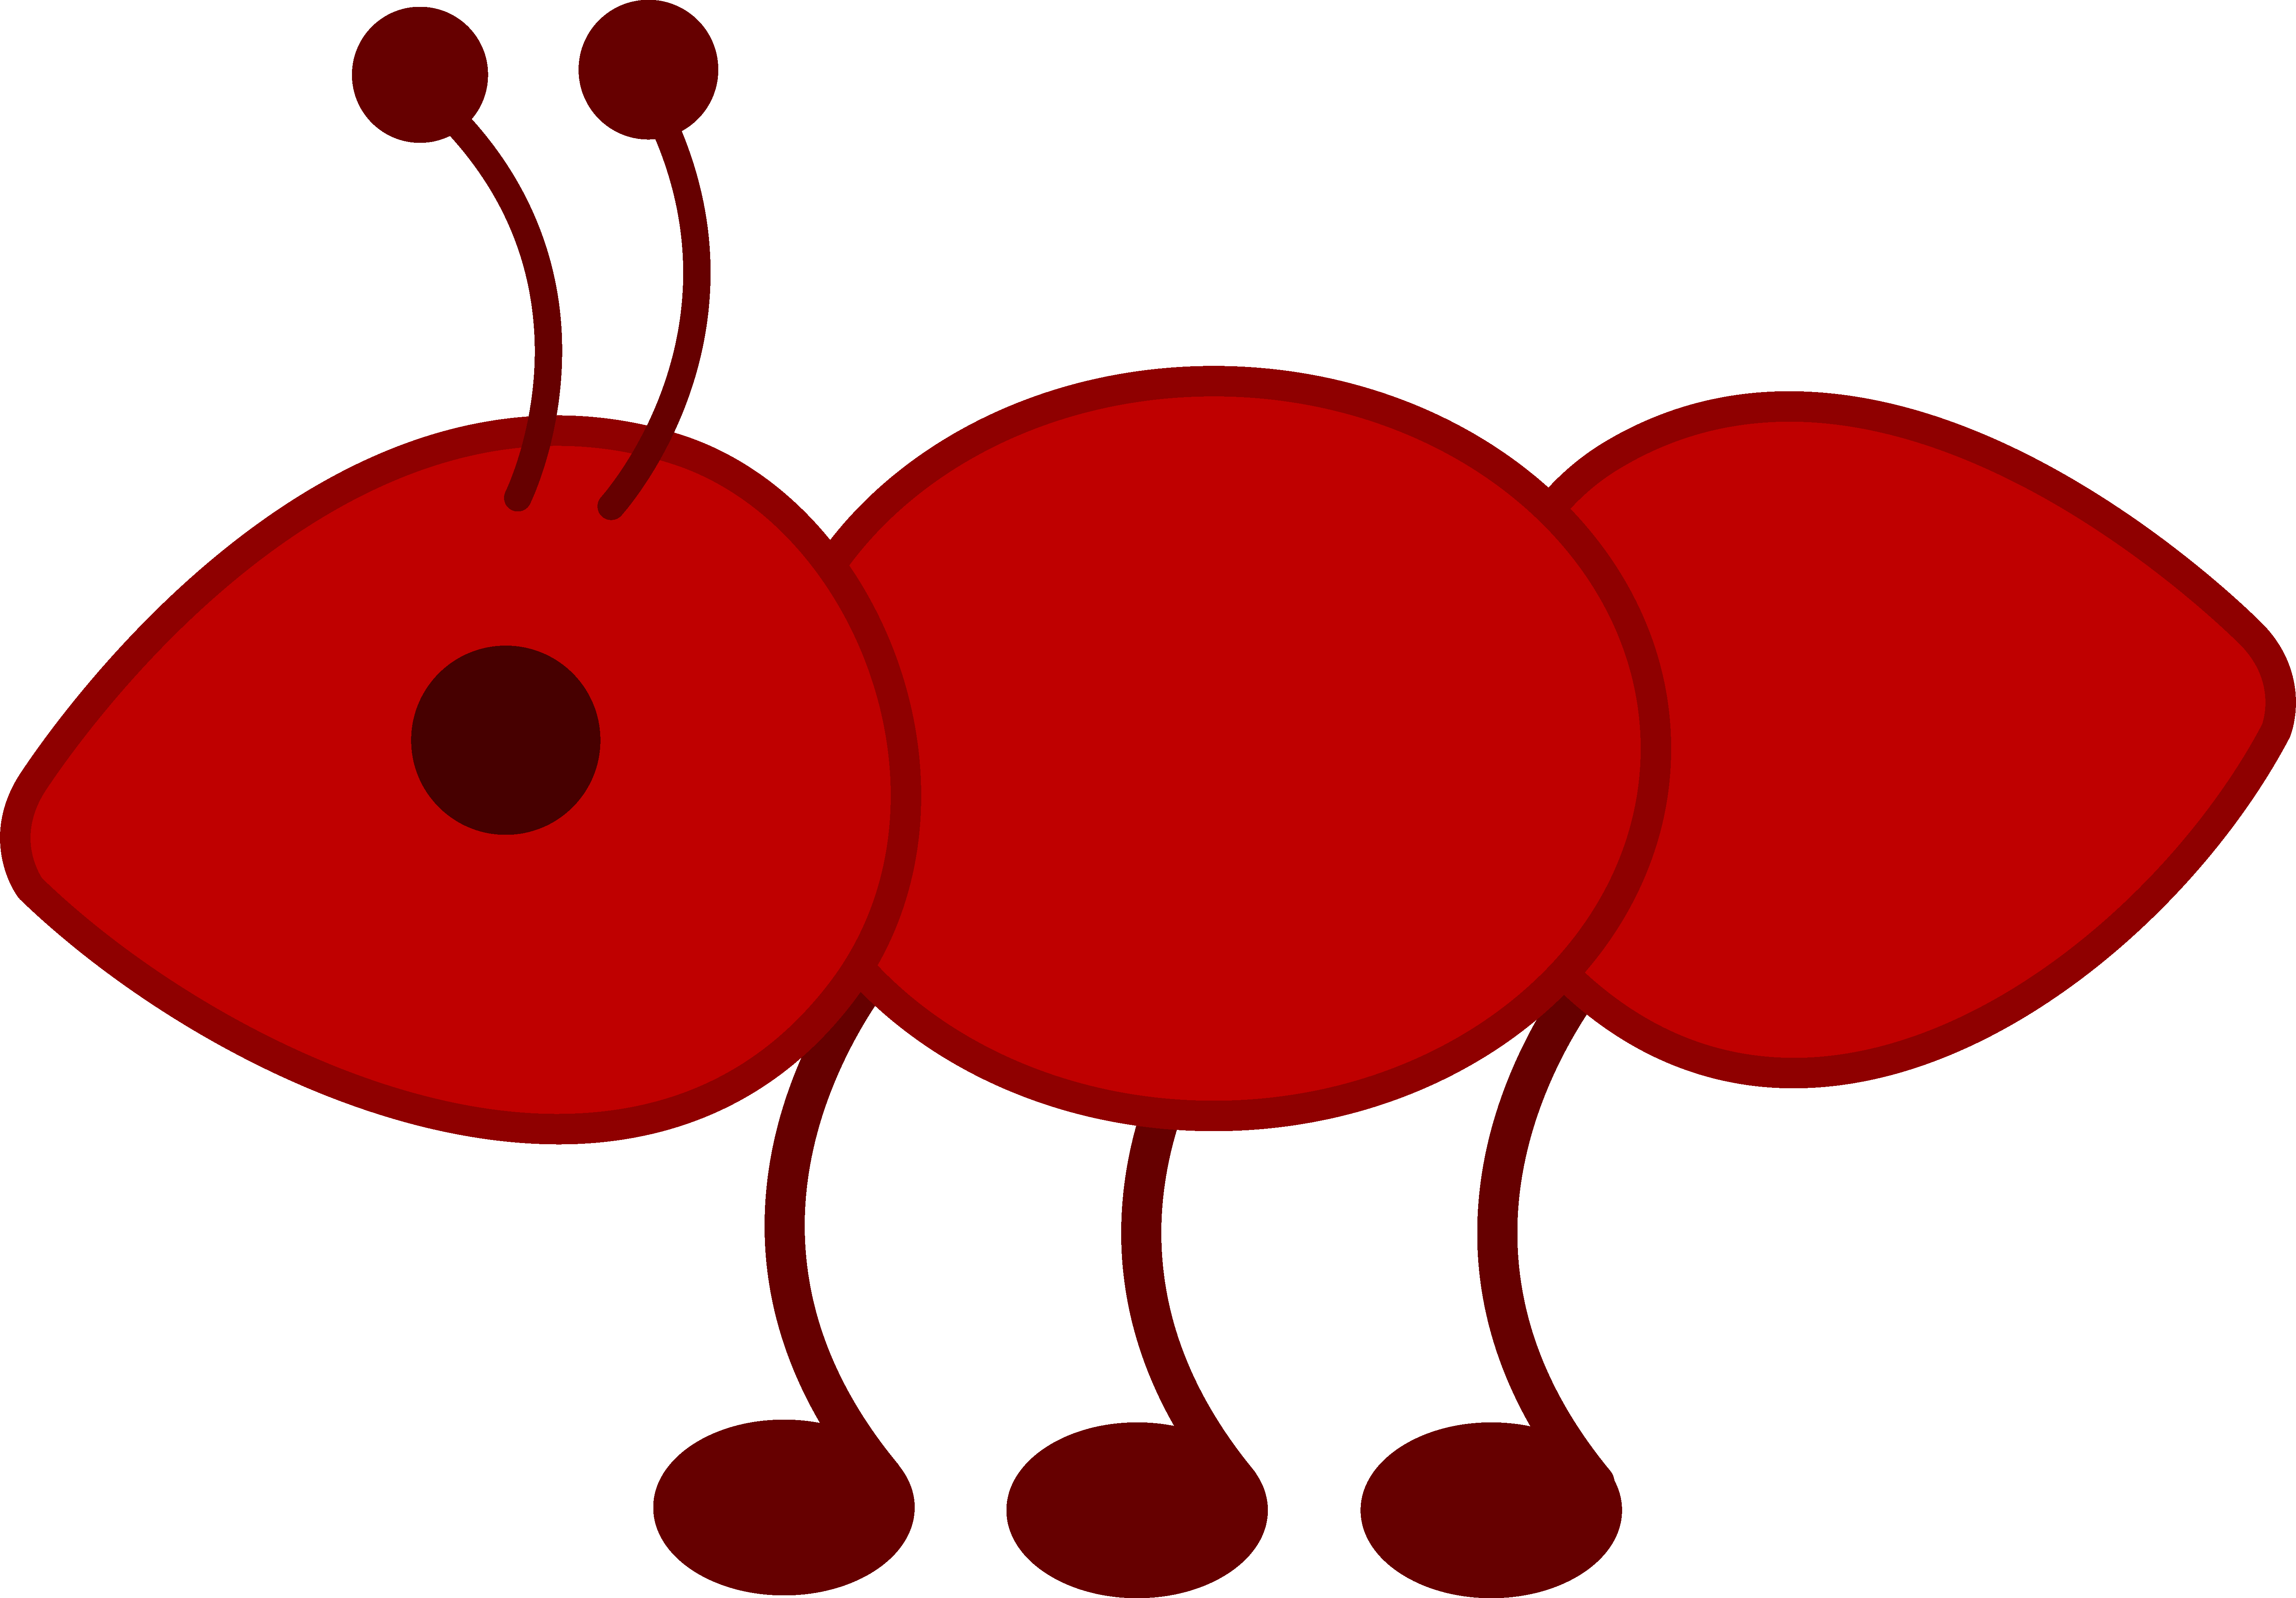 Transparent ant little red. Free clipart image